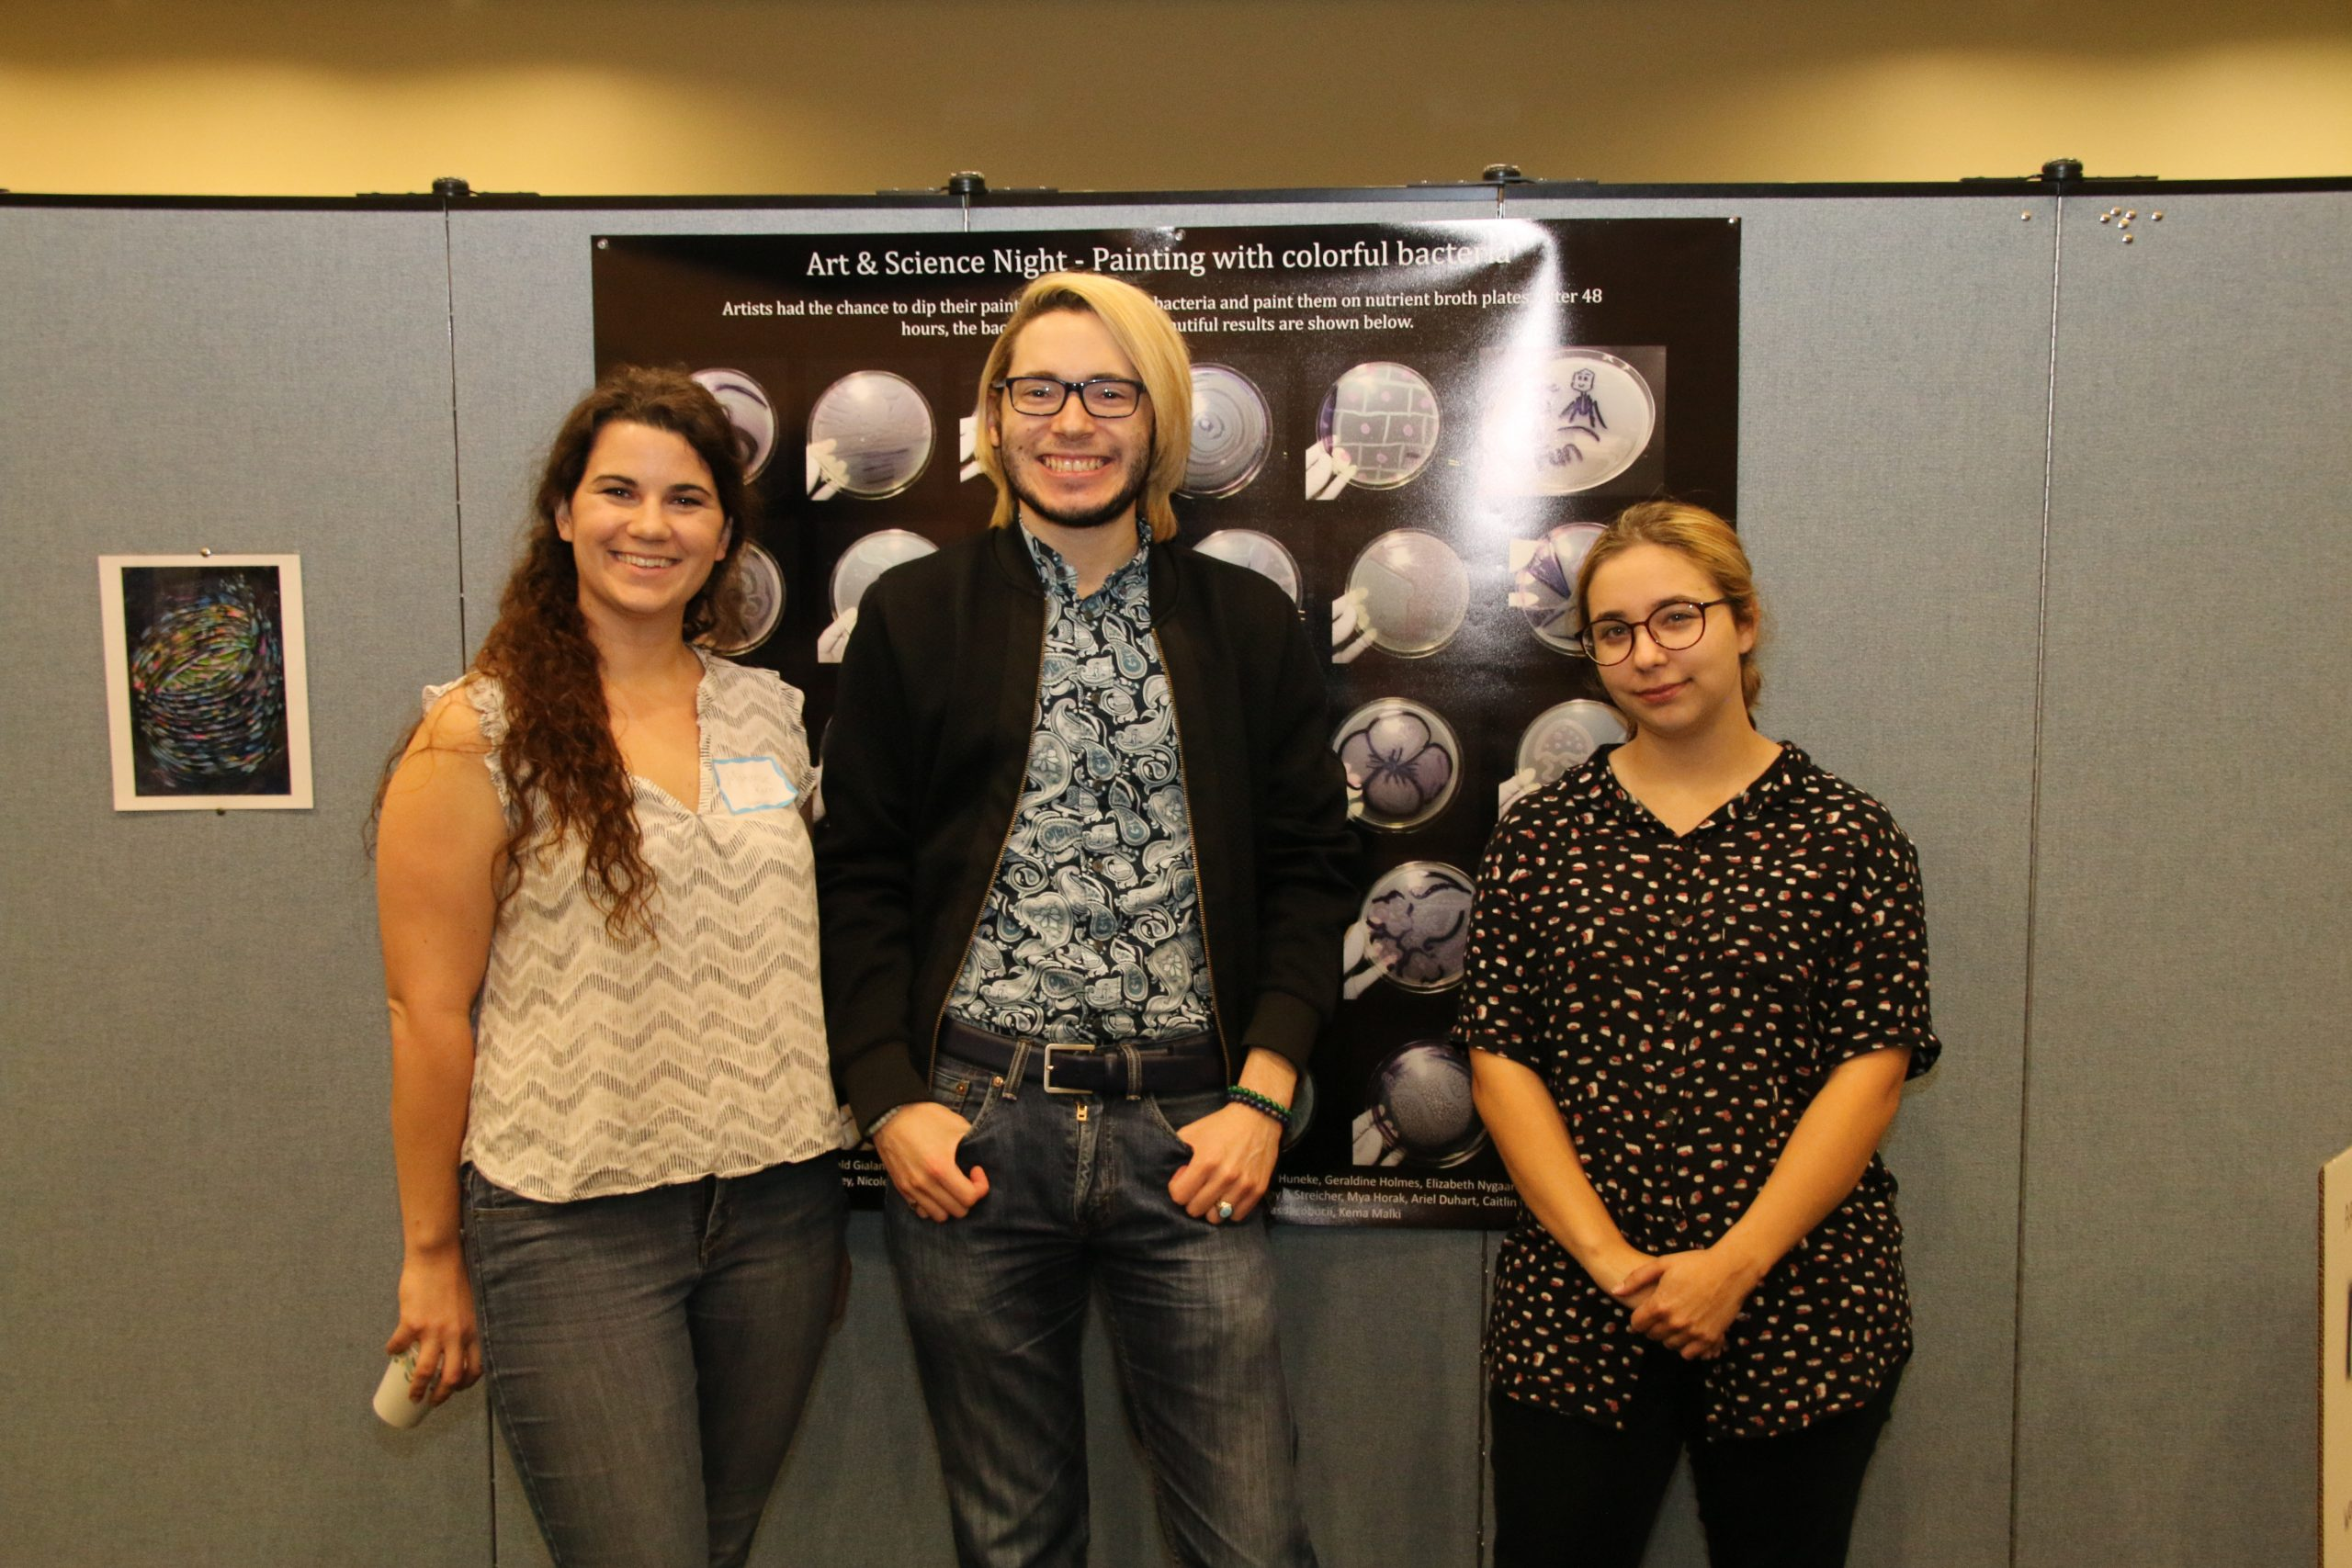 Makenzie Kerr (College of Marine Science), Antonio Permuy and Grace Stocksdale (The Collection art club) planned and coordinated the art exhibit.